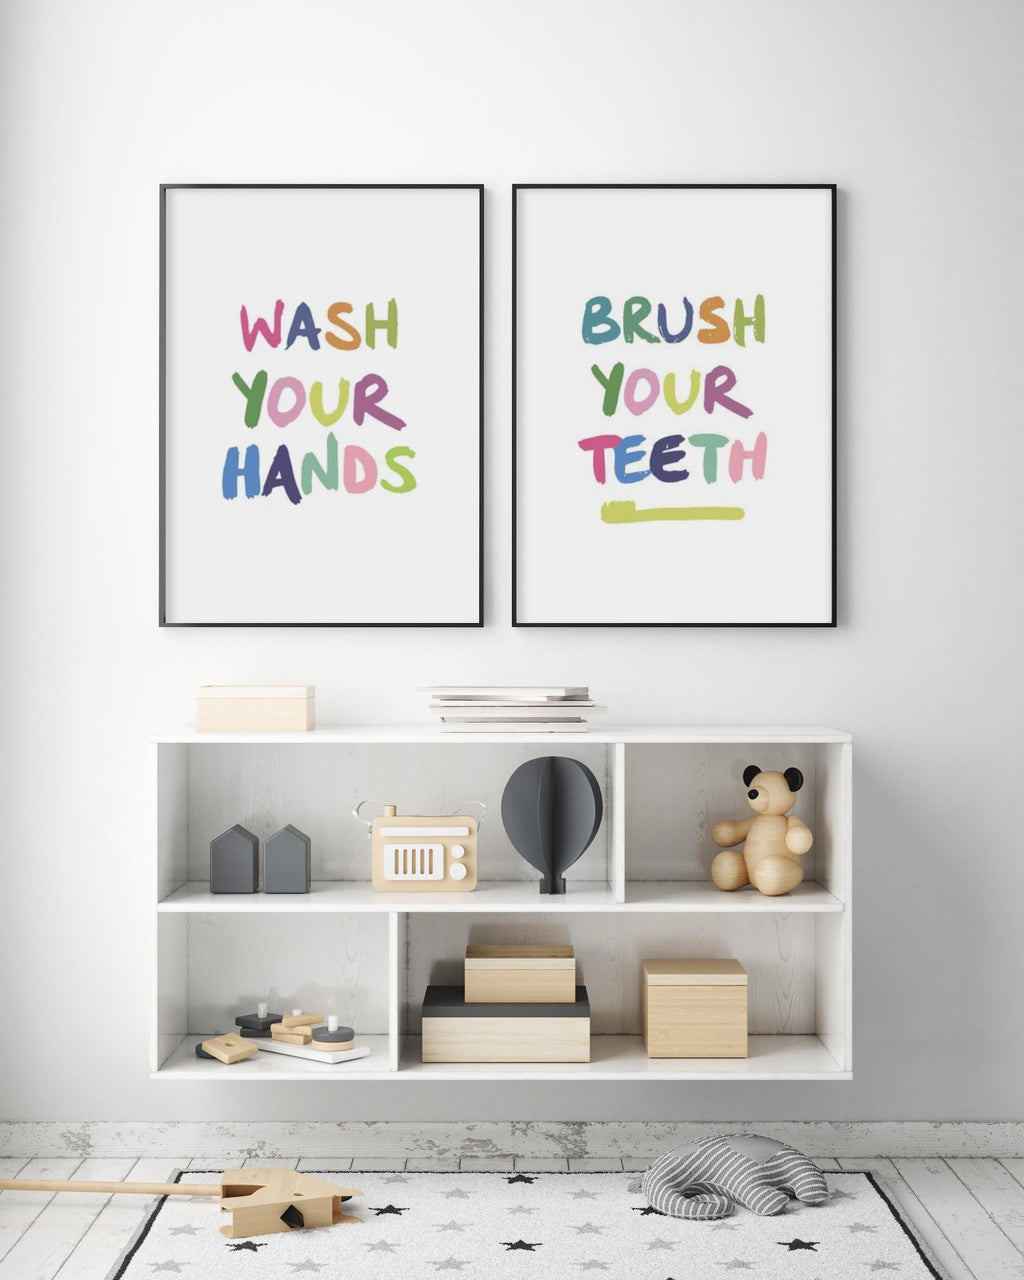 Brush Your Teeth - Olive et Oriel